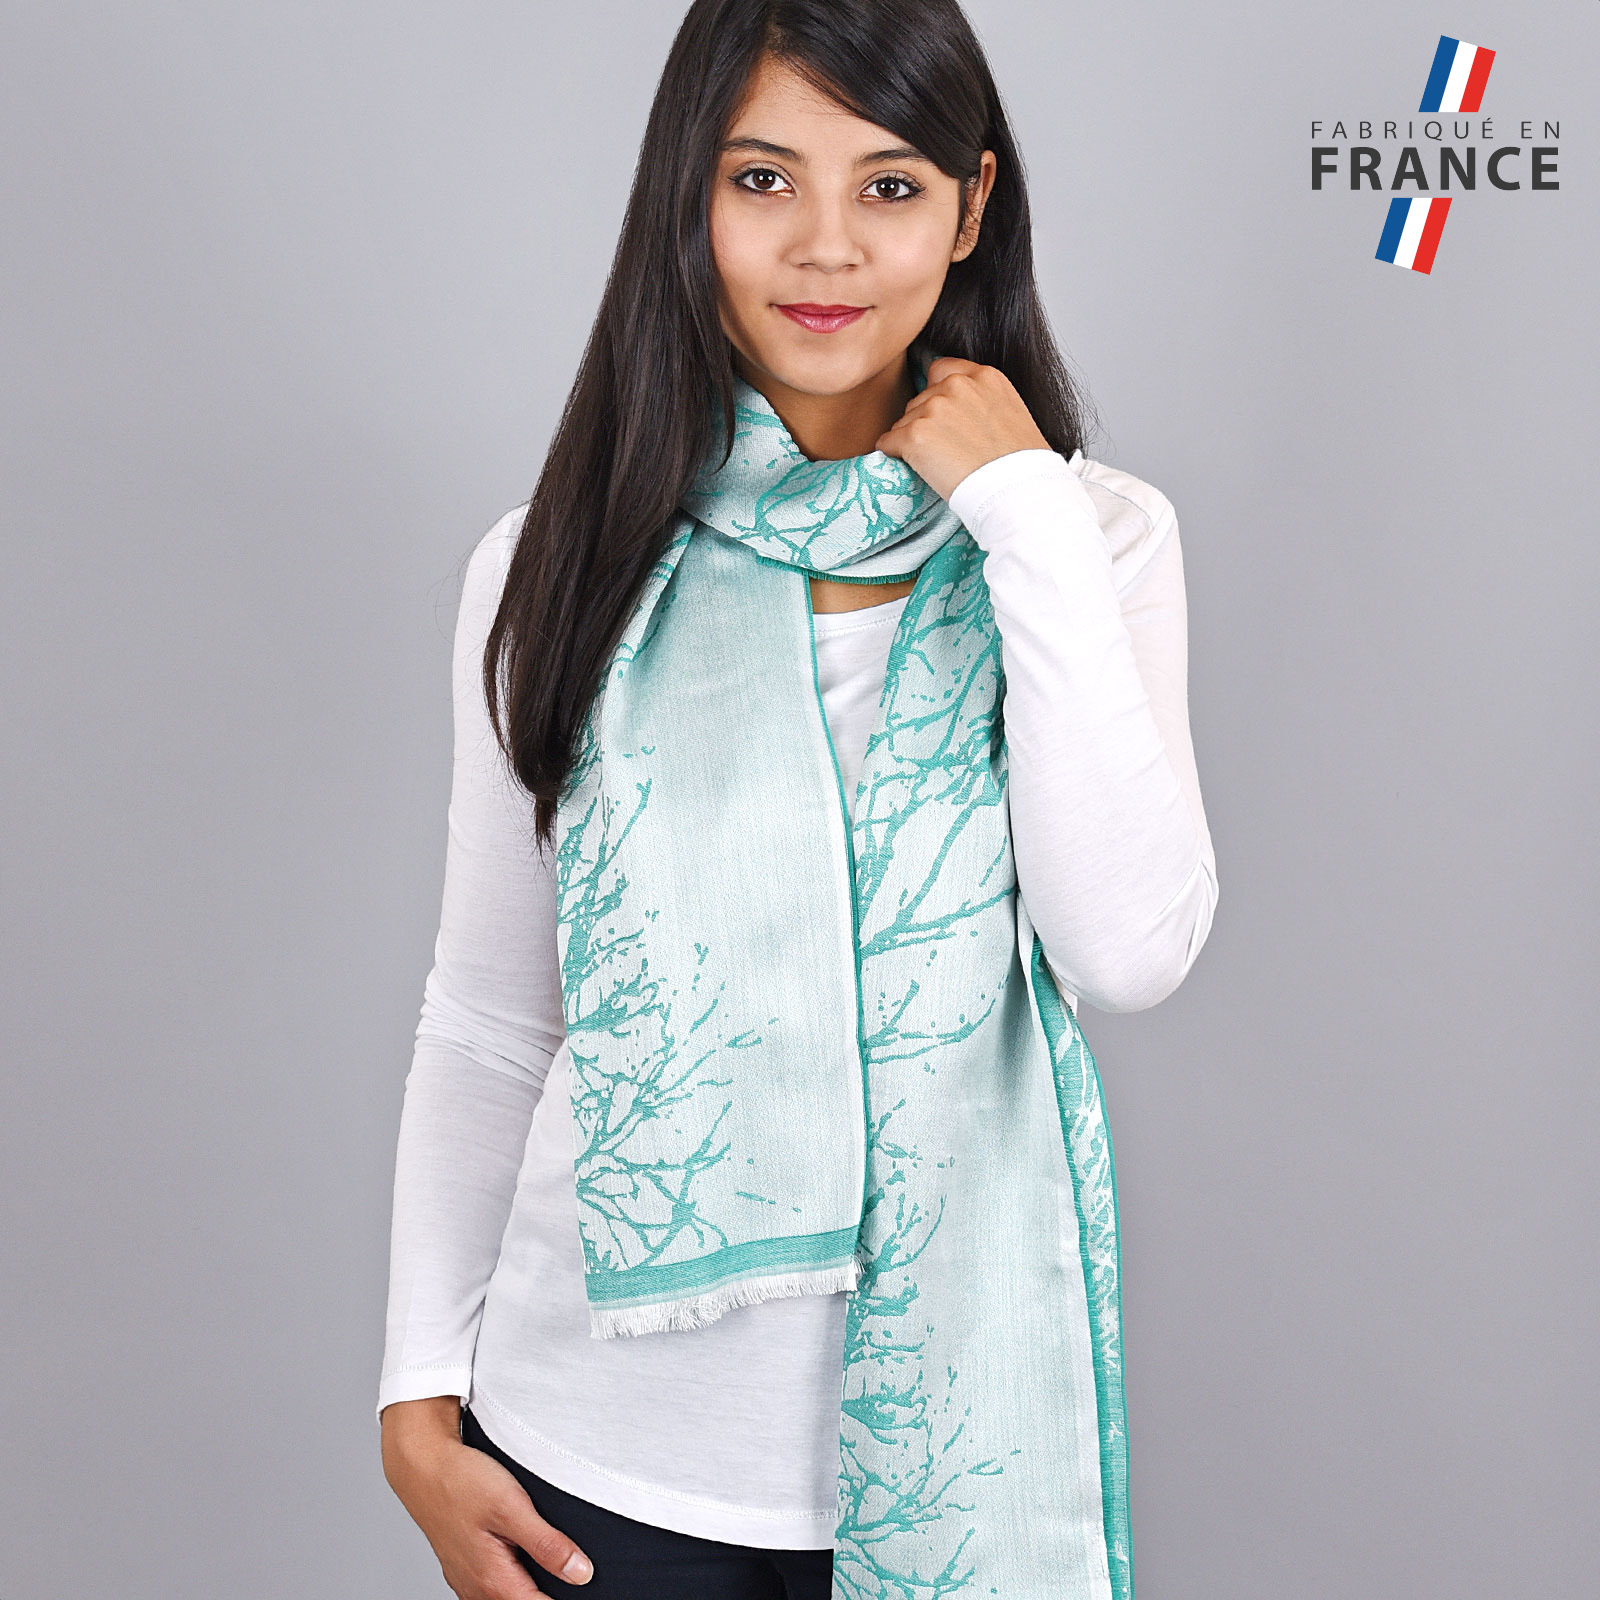 AT-04178-VF16-LB_FR-echarpe-femmes-vert-anis-qualicoq-fabrication-france